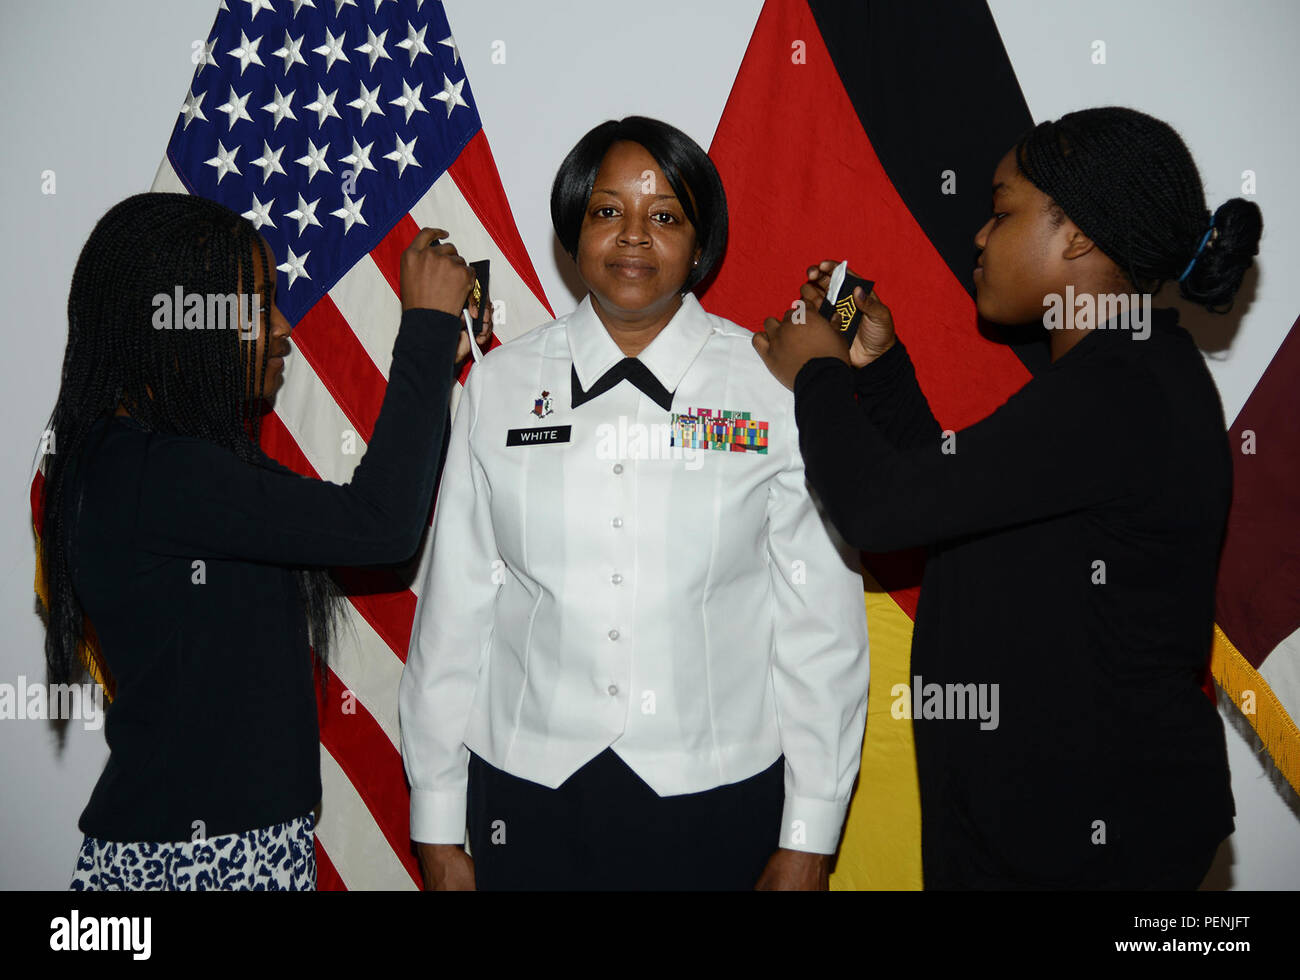 Command Sgt. Maj. Diahann J. White has her daughters put on her new rank during her lateral promotion ceremony prior to her assignment as command sergeant major of the 121st Combat Support Hospital in Yongsan, South Korea, on Dec. 16, 2015, in Sembach, Germany. Approximately 12 percent of E-9s in the U.S. Army are chosen for command sergeant major positions and in the Army Medical Department the percentage for these positions is around 11 percent (Photo by Elisabeth Paqué, 7th US Army JMTC Visual Information Specialist). Stock Photo